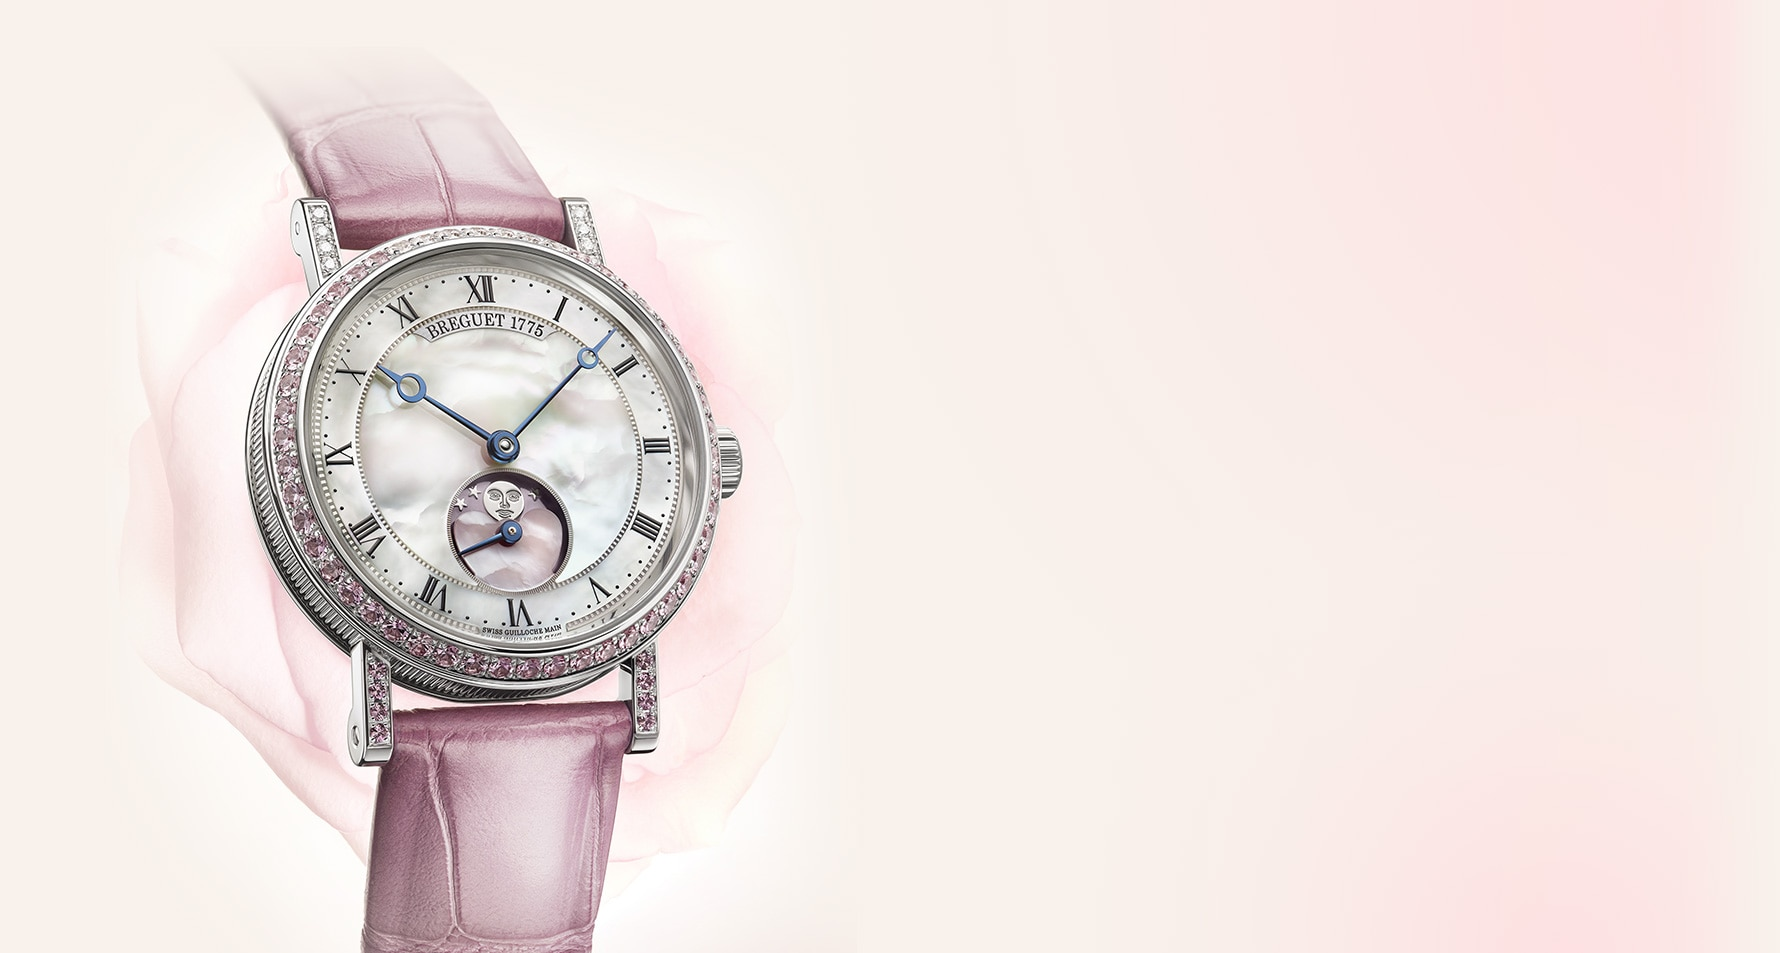 A limited edition Breguet Classique for Valentine's Day